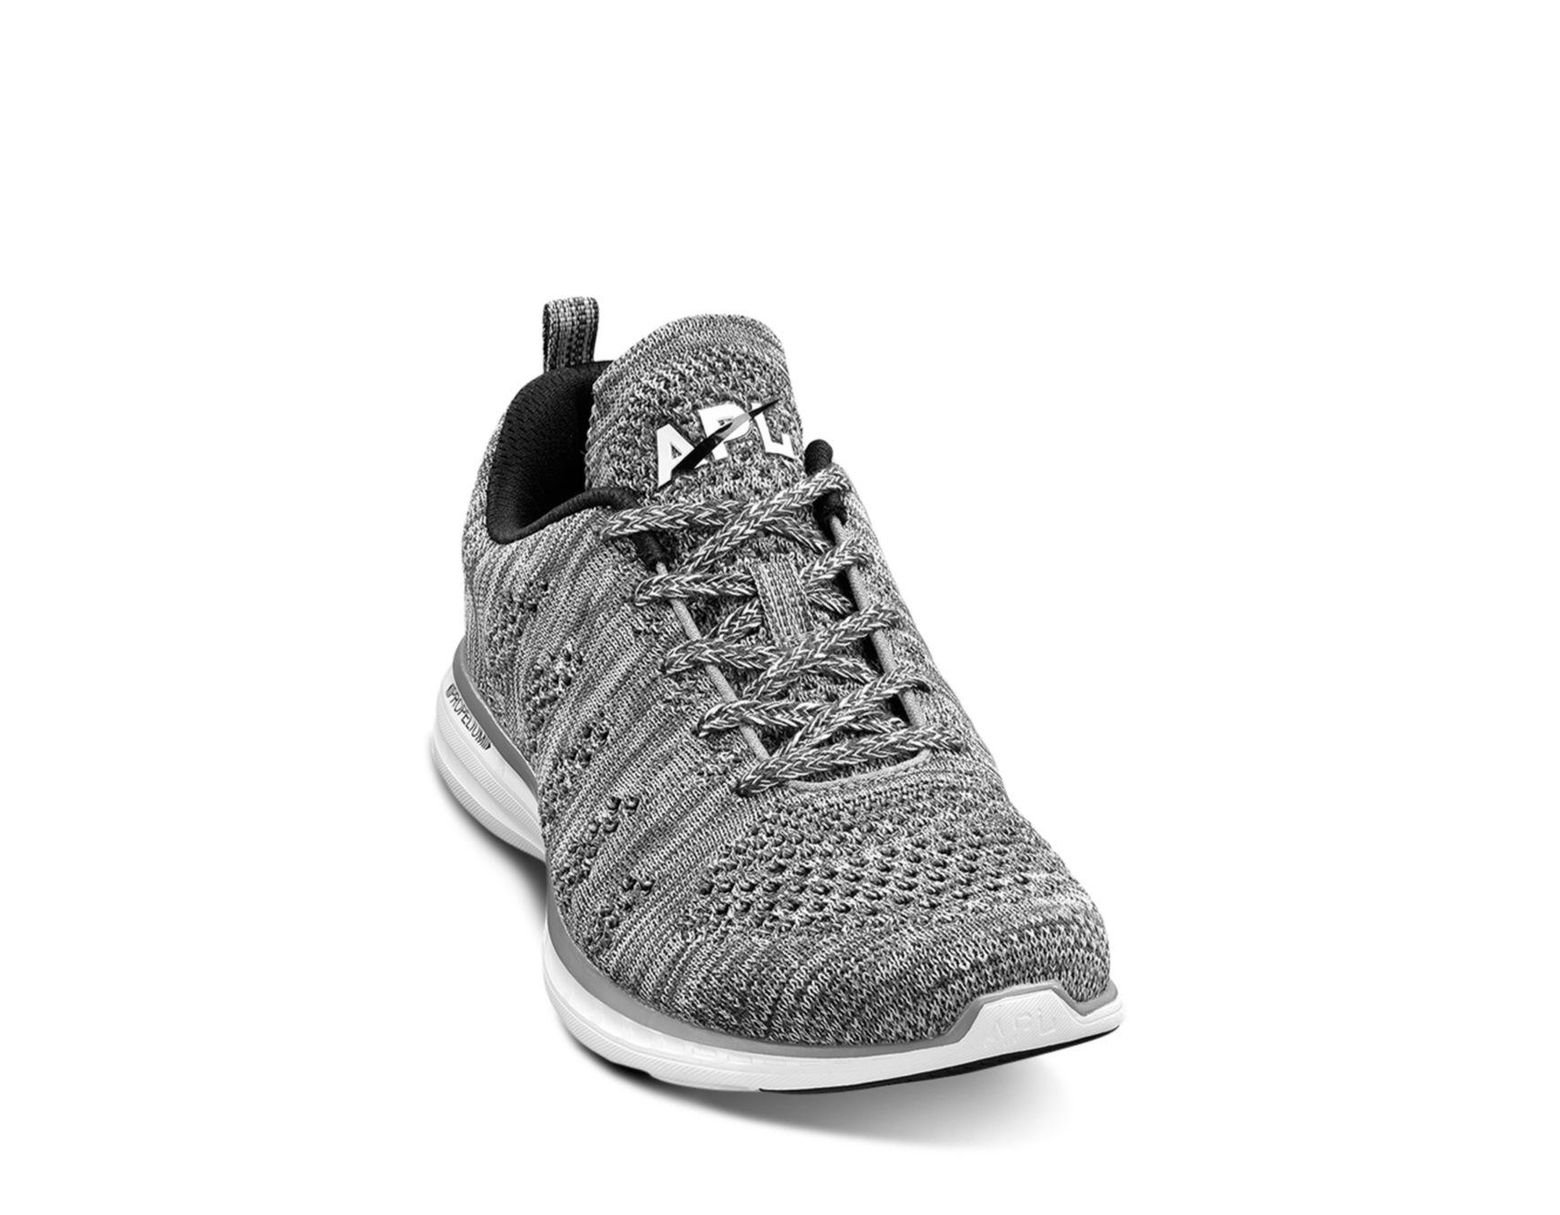 e4360d7b24ce Apl: Athletic Propulsion Labs Athletic Propulsion Labs Women's Techloom Pro Knit  Low - Top Sneakers in Gray - Save 45% - Lyst